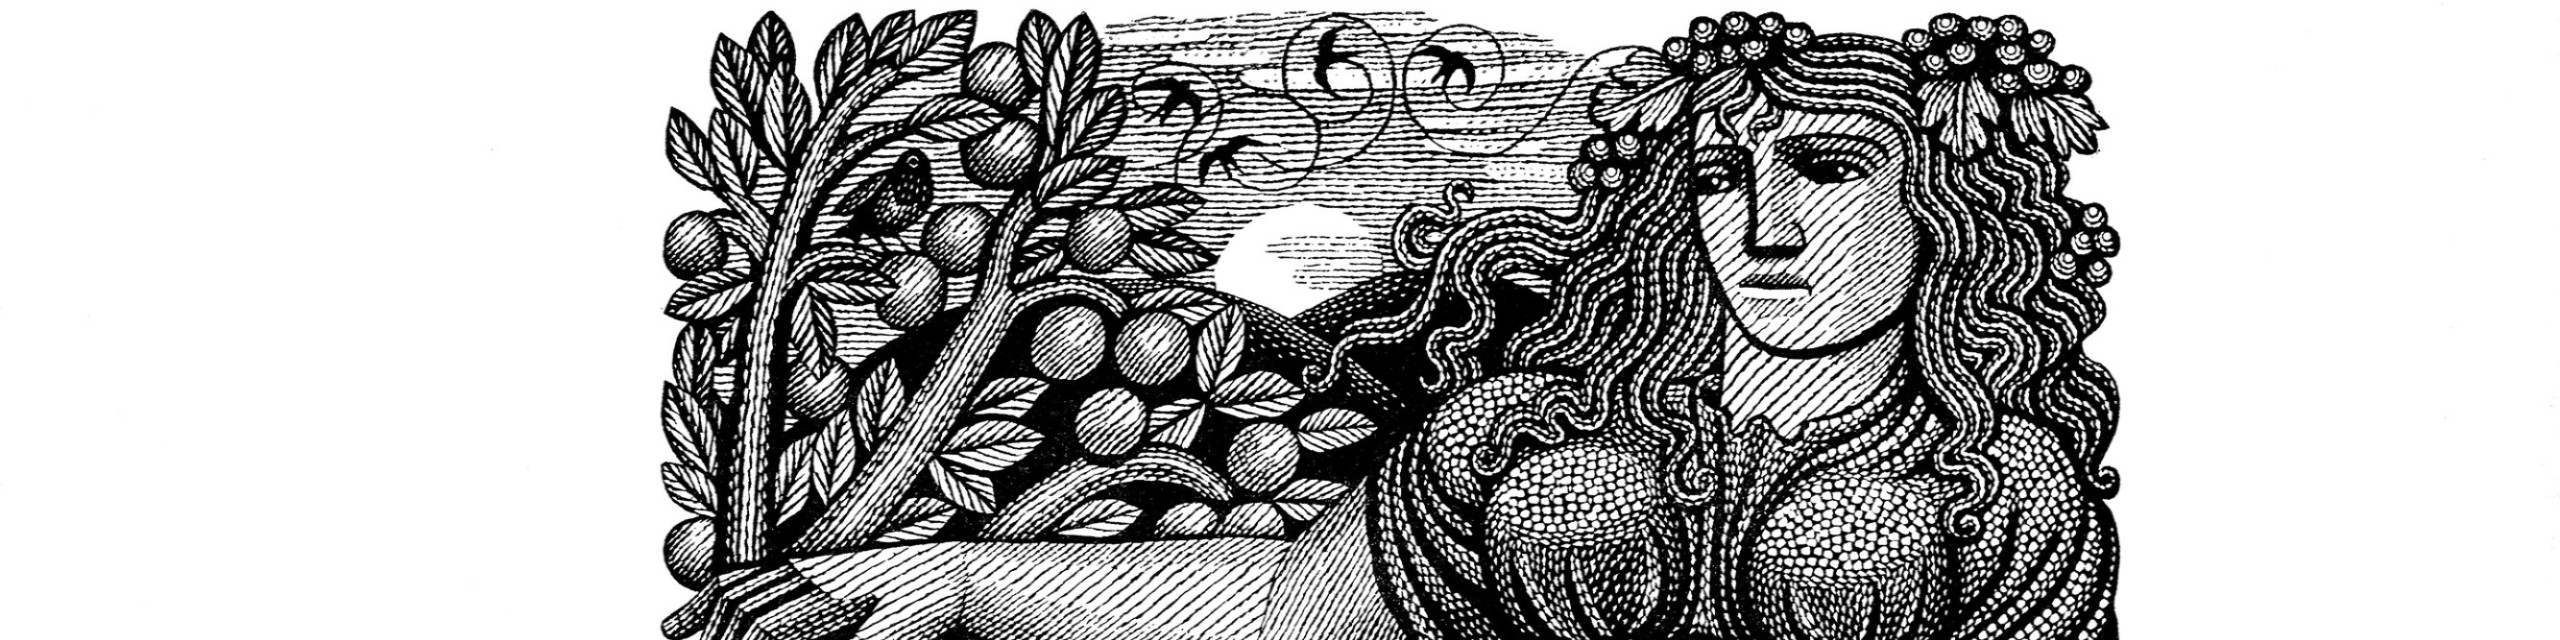 Wood engraving called To Autumn by Harry Brockway